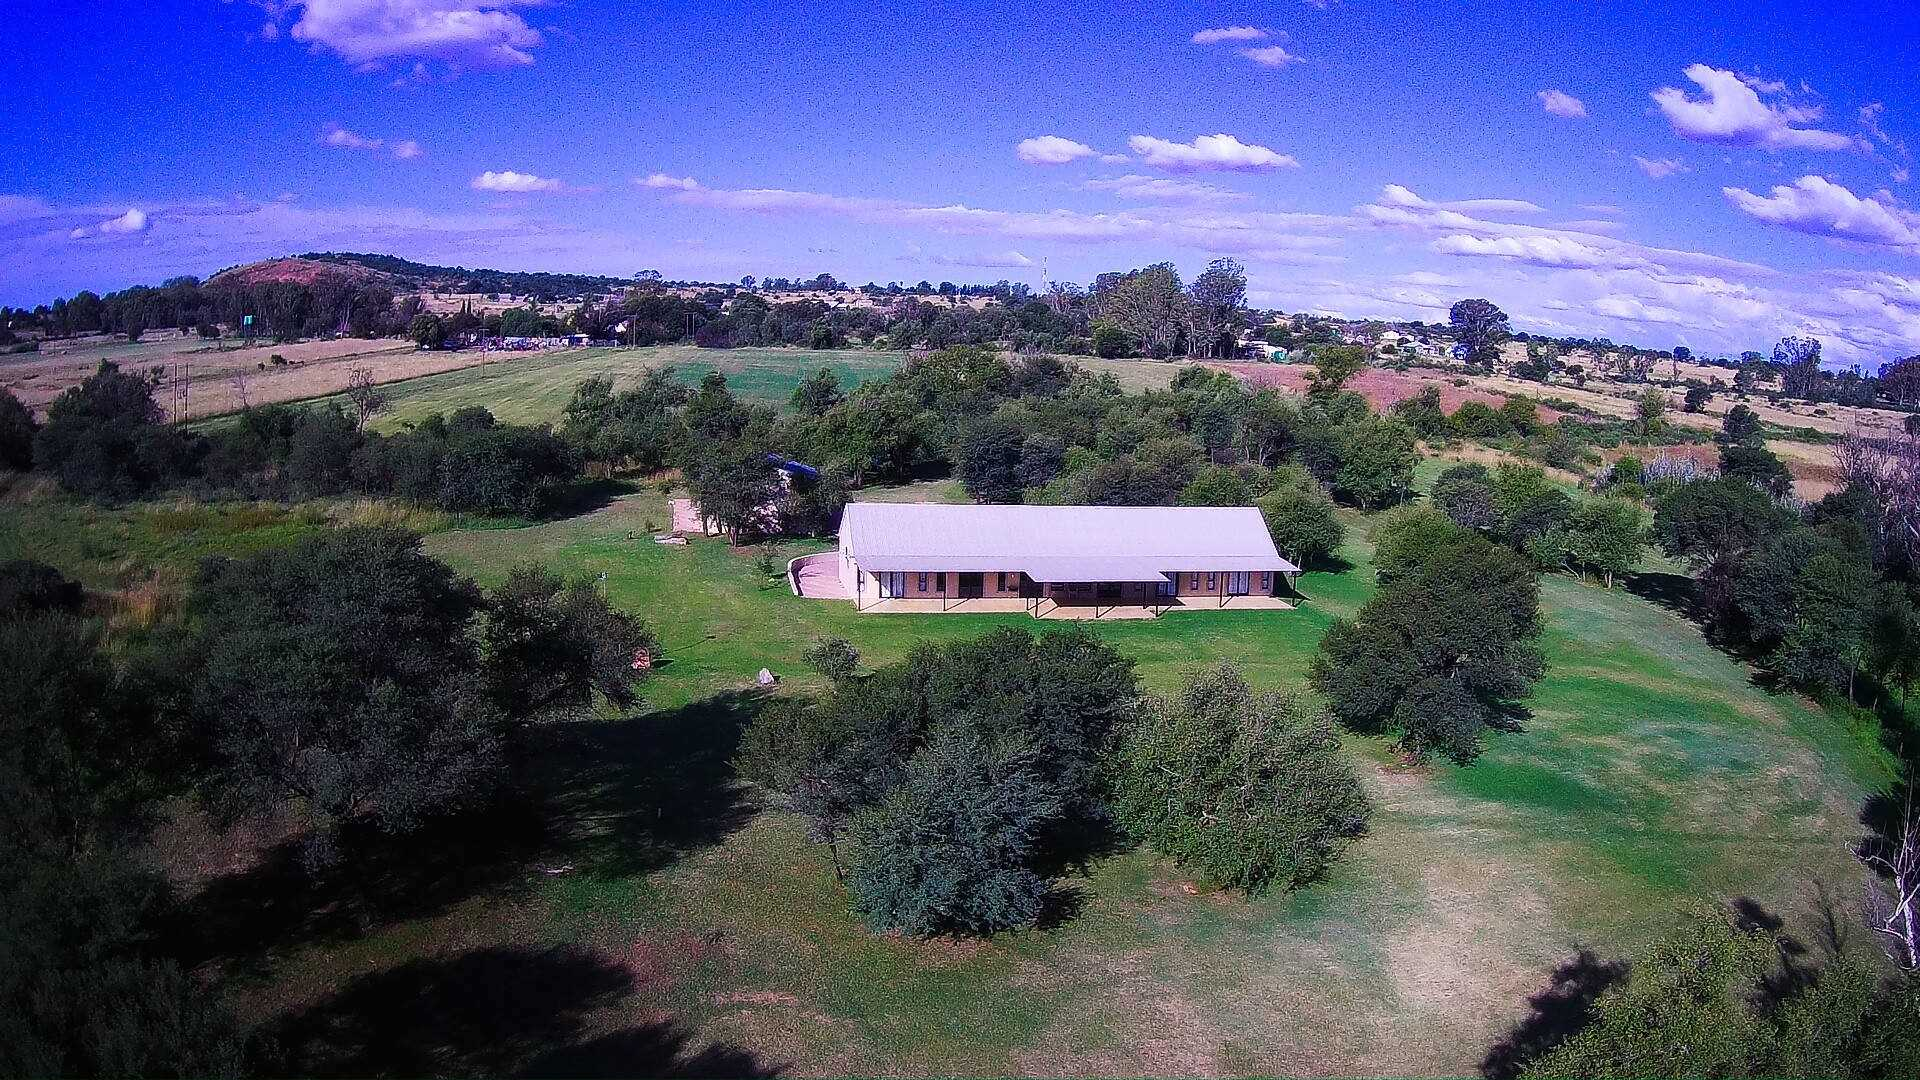 Vaal River farm with two family homes.